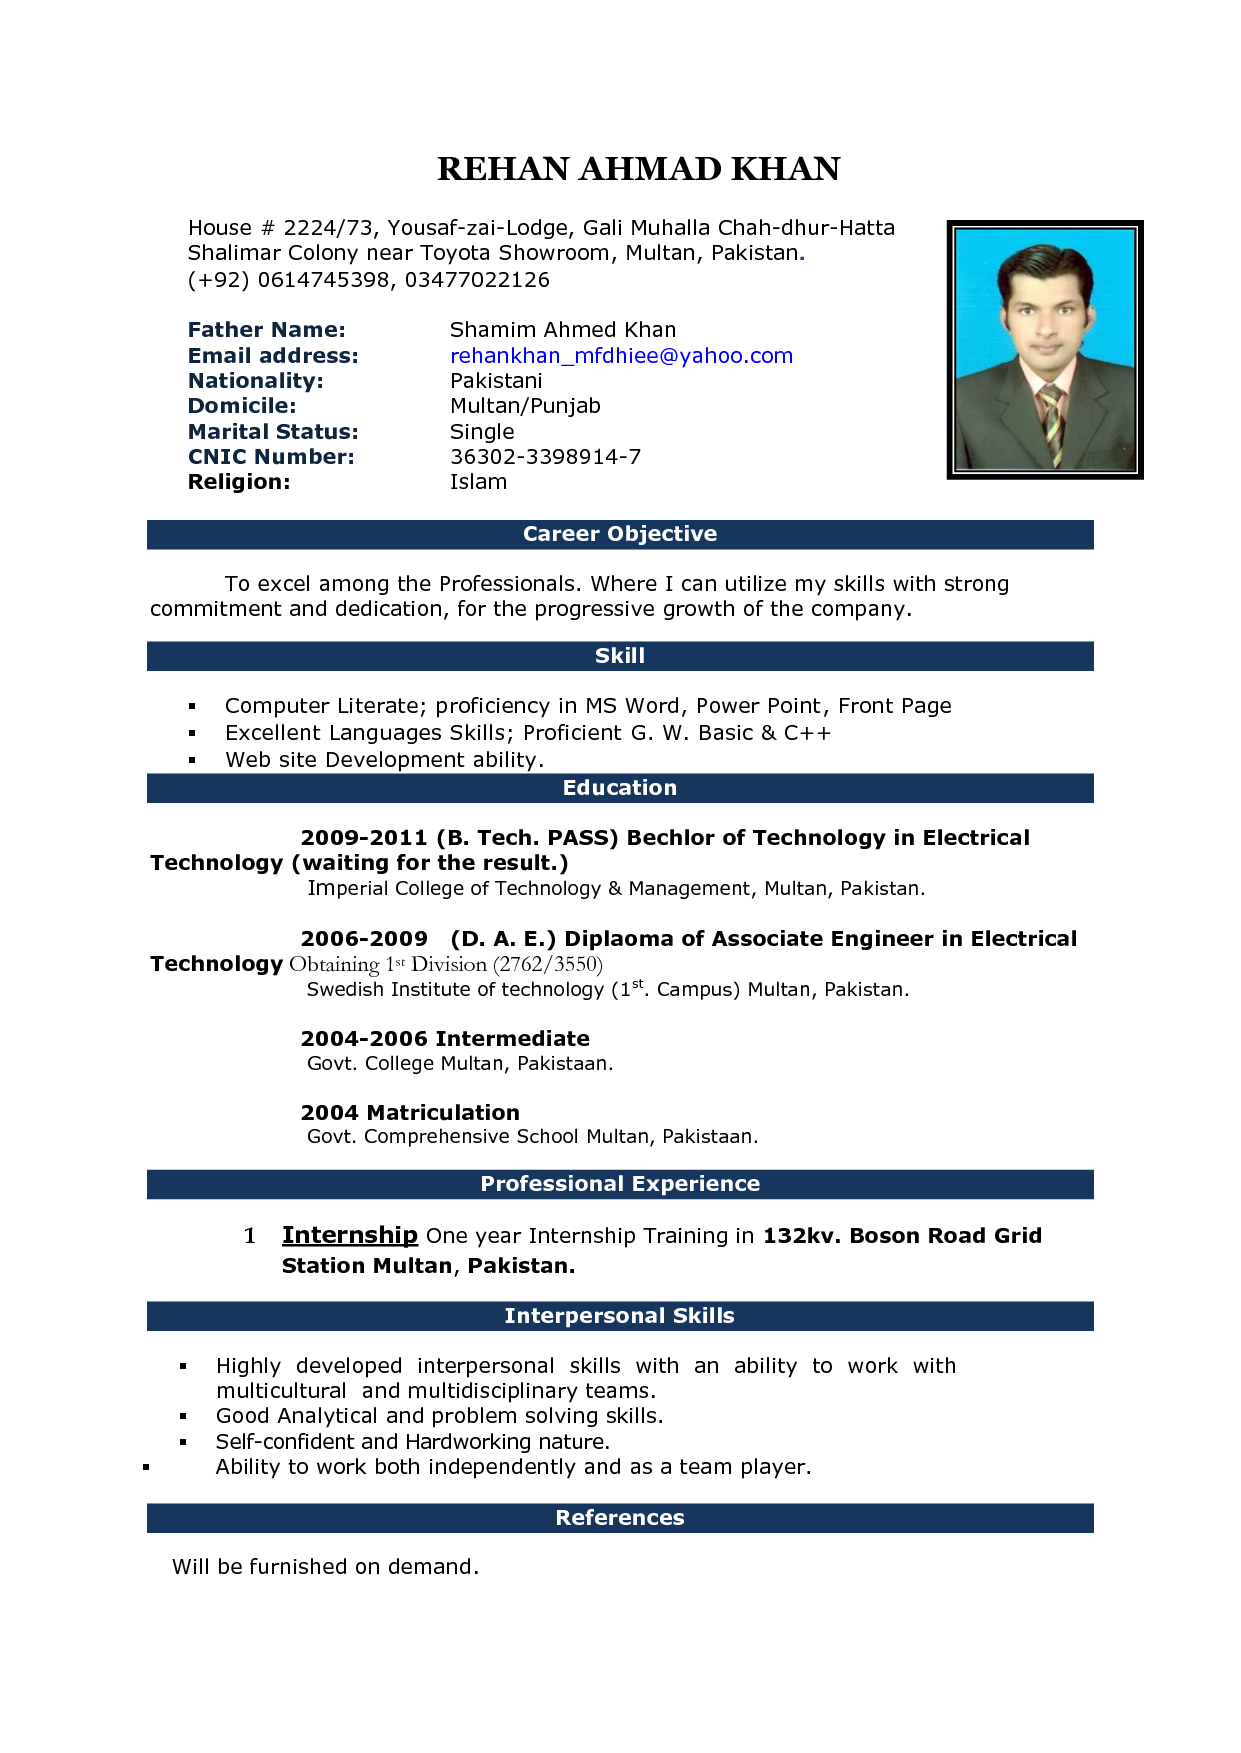 How to make a cv using microsoft word 2007